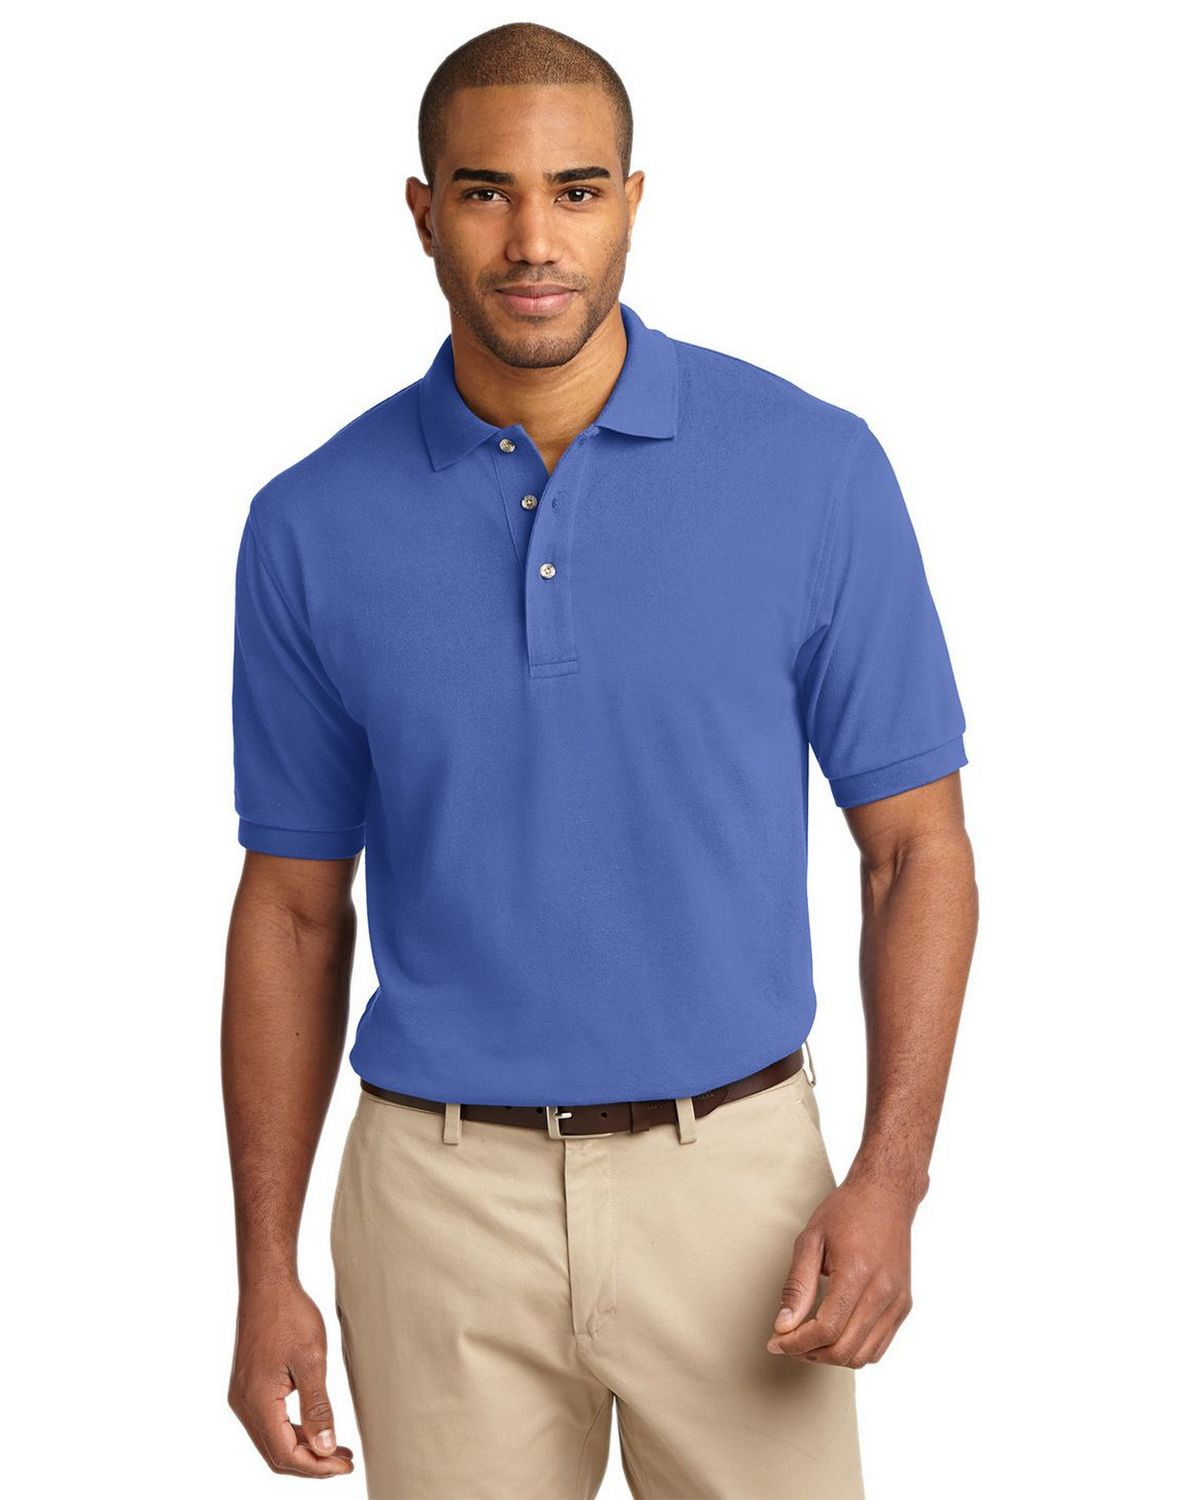 Port Authority K420 Pique Knit Polo - Faded Blue - XS